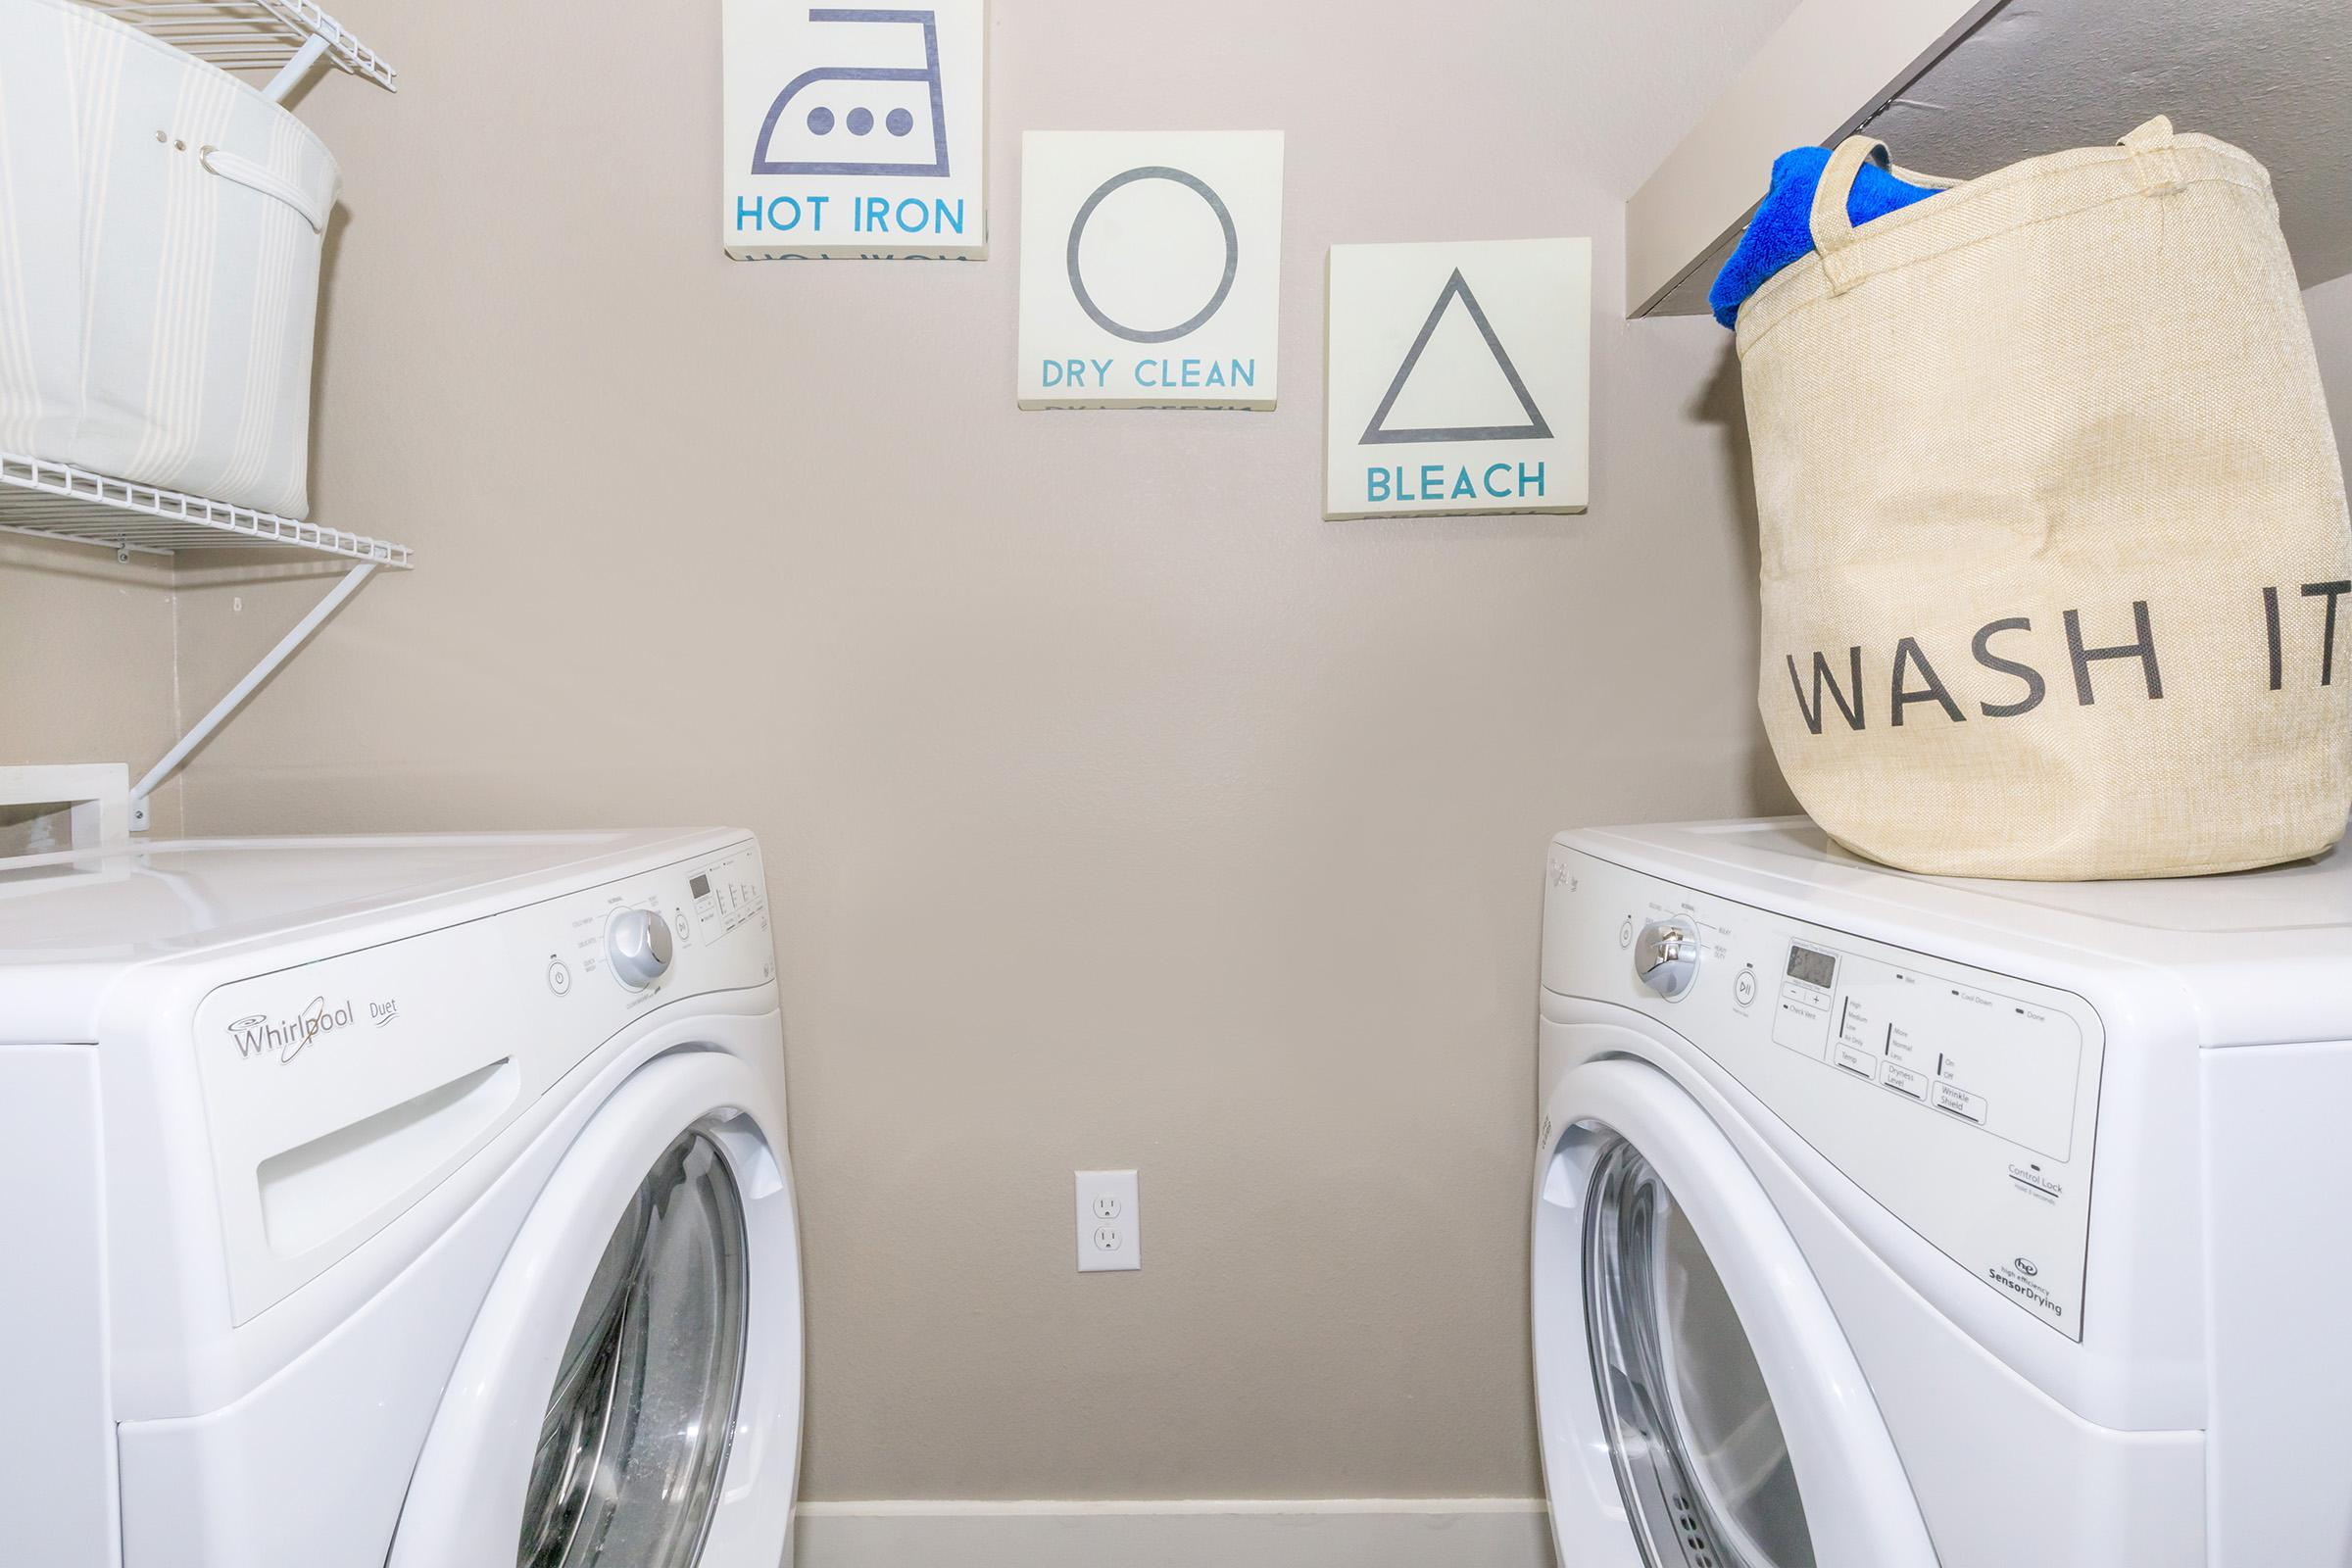 a washer and dryer